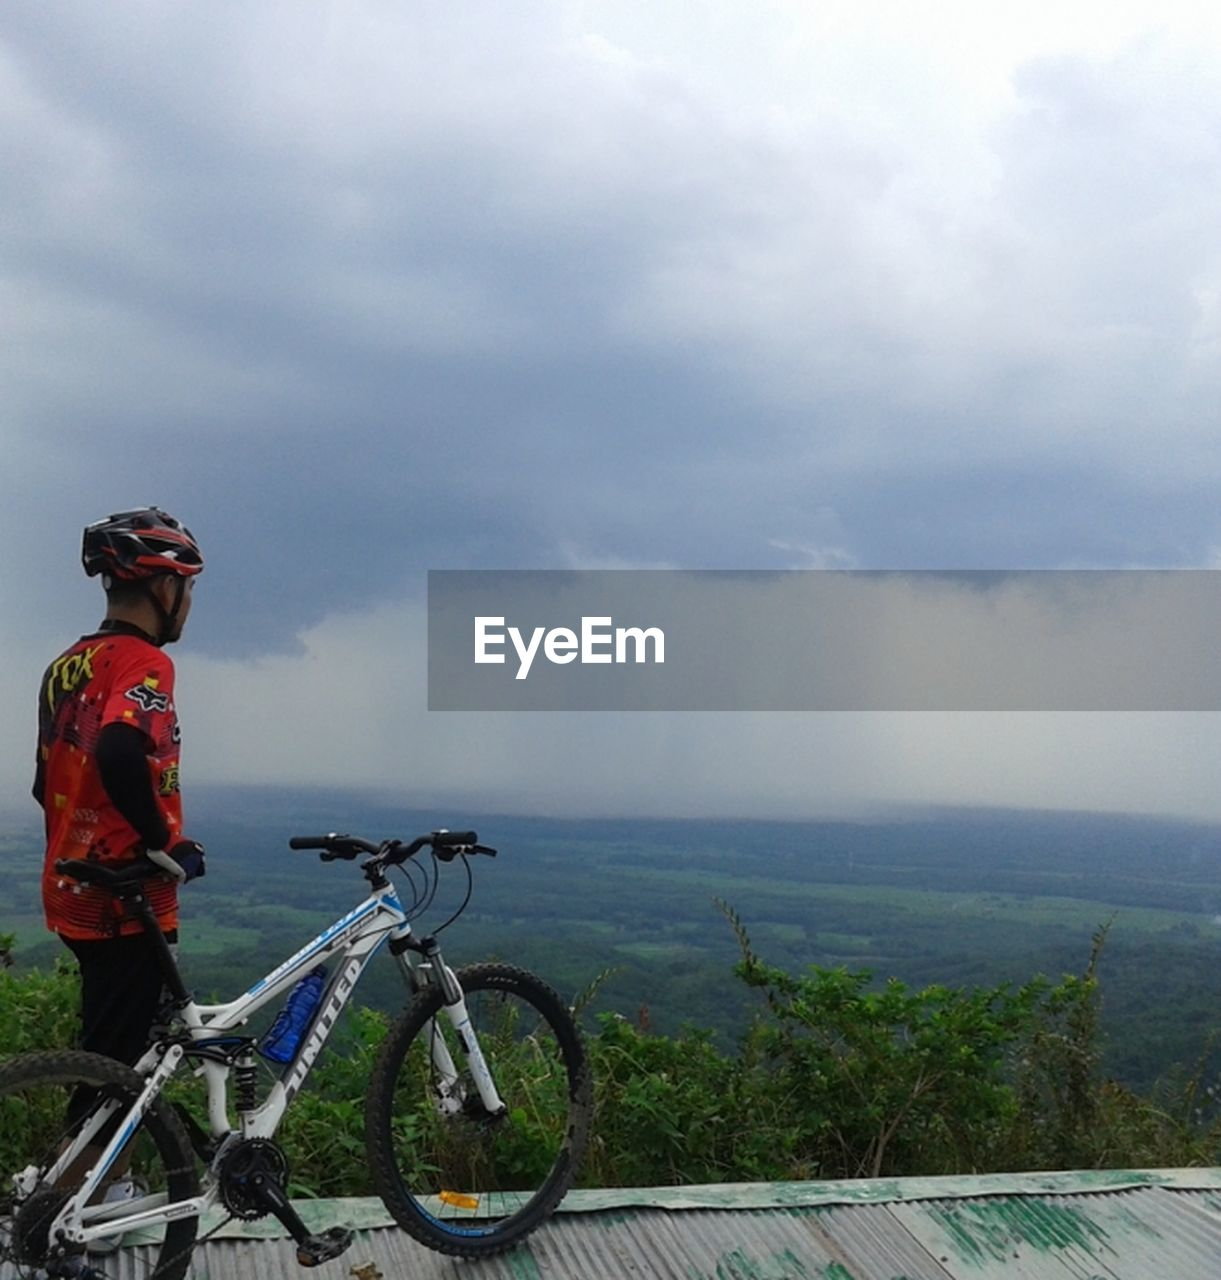 sky, bicycle, transportation, cloud - sky, mode of transport, day, nature, outdoors, real people, cycling helmet, scenics, cycling, water, one person, sea, adventure, horizon over water, land vehicle, beauty in nature, mountain bike, landscape, men, lifestyles, headwear, mountain, people